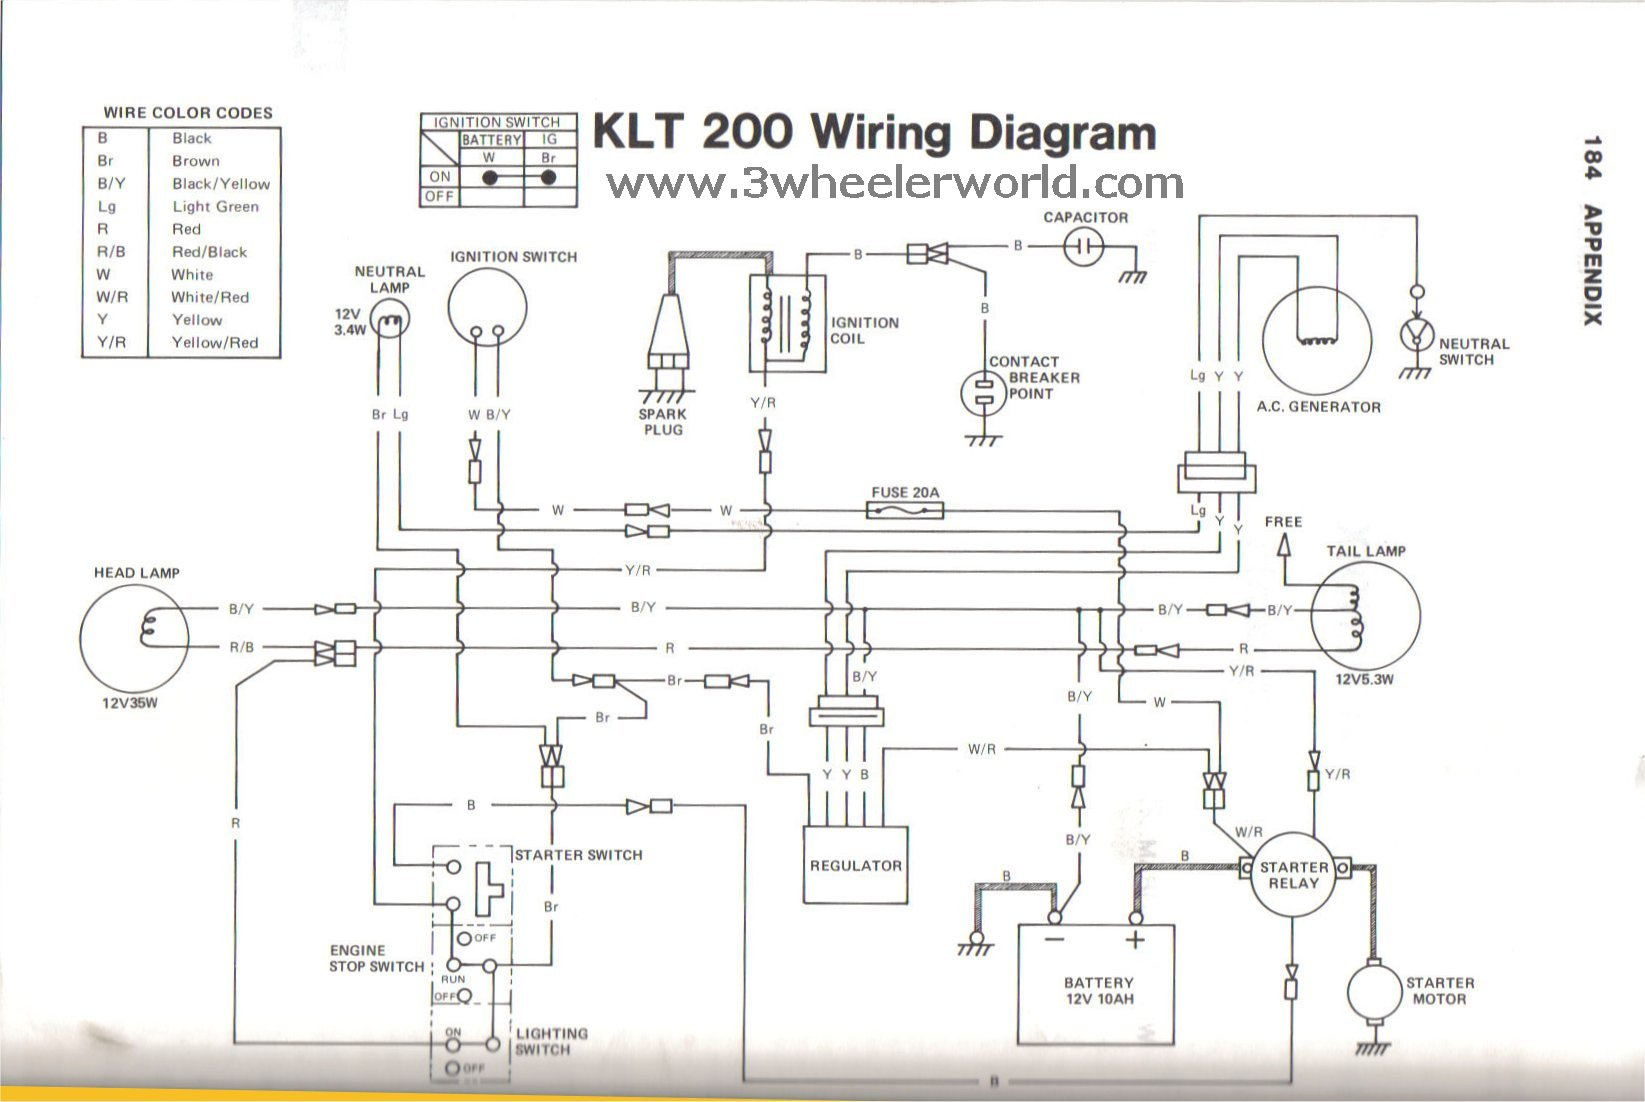 Kawasaki 4 Wheeler Wiring Diagram Best Secret 98 300 Klt 200 With Description Bayou